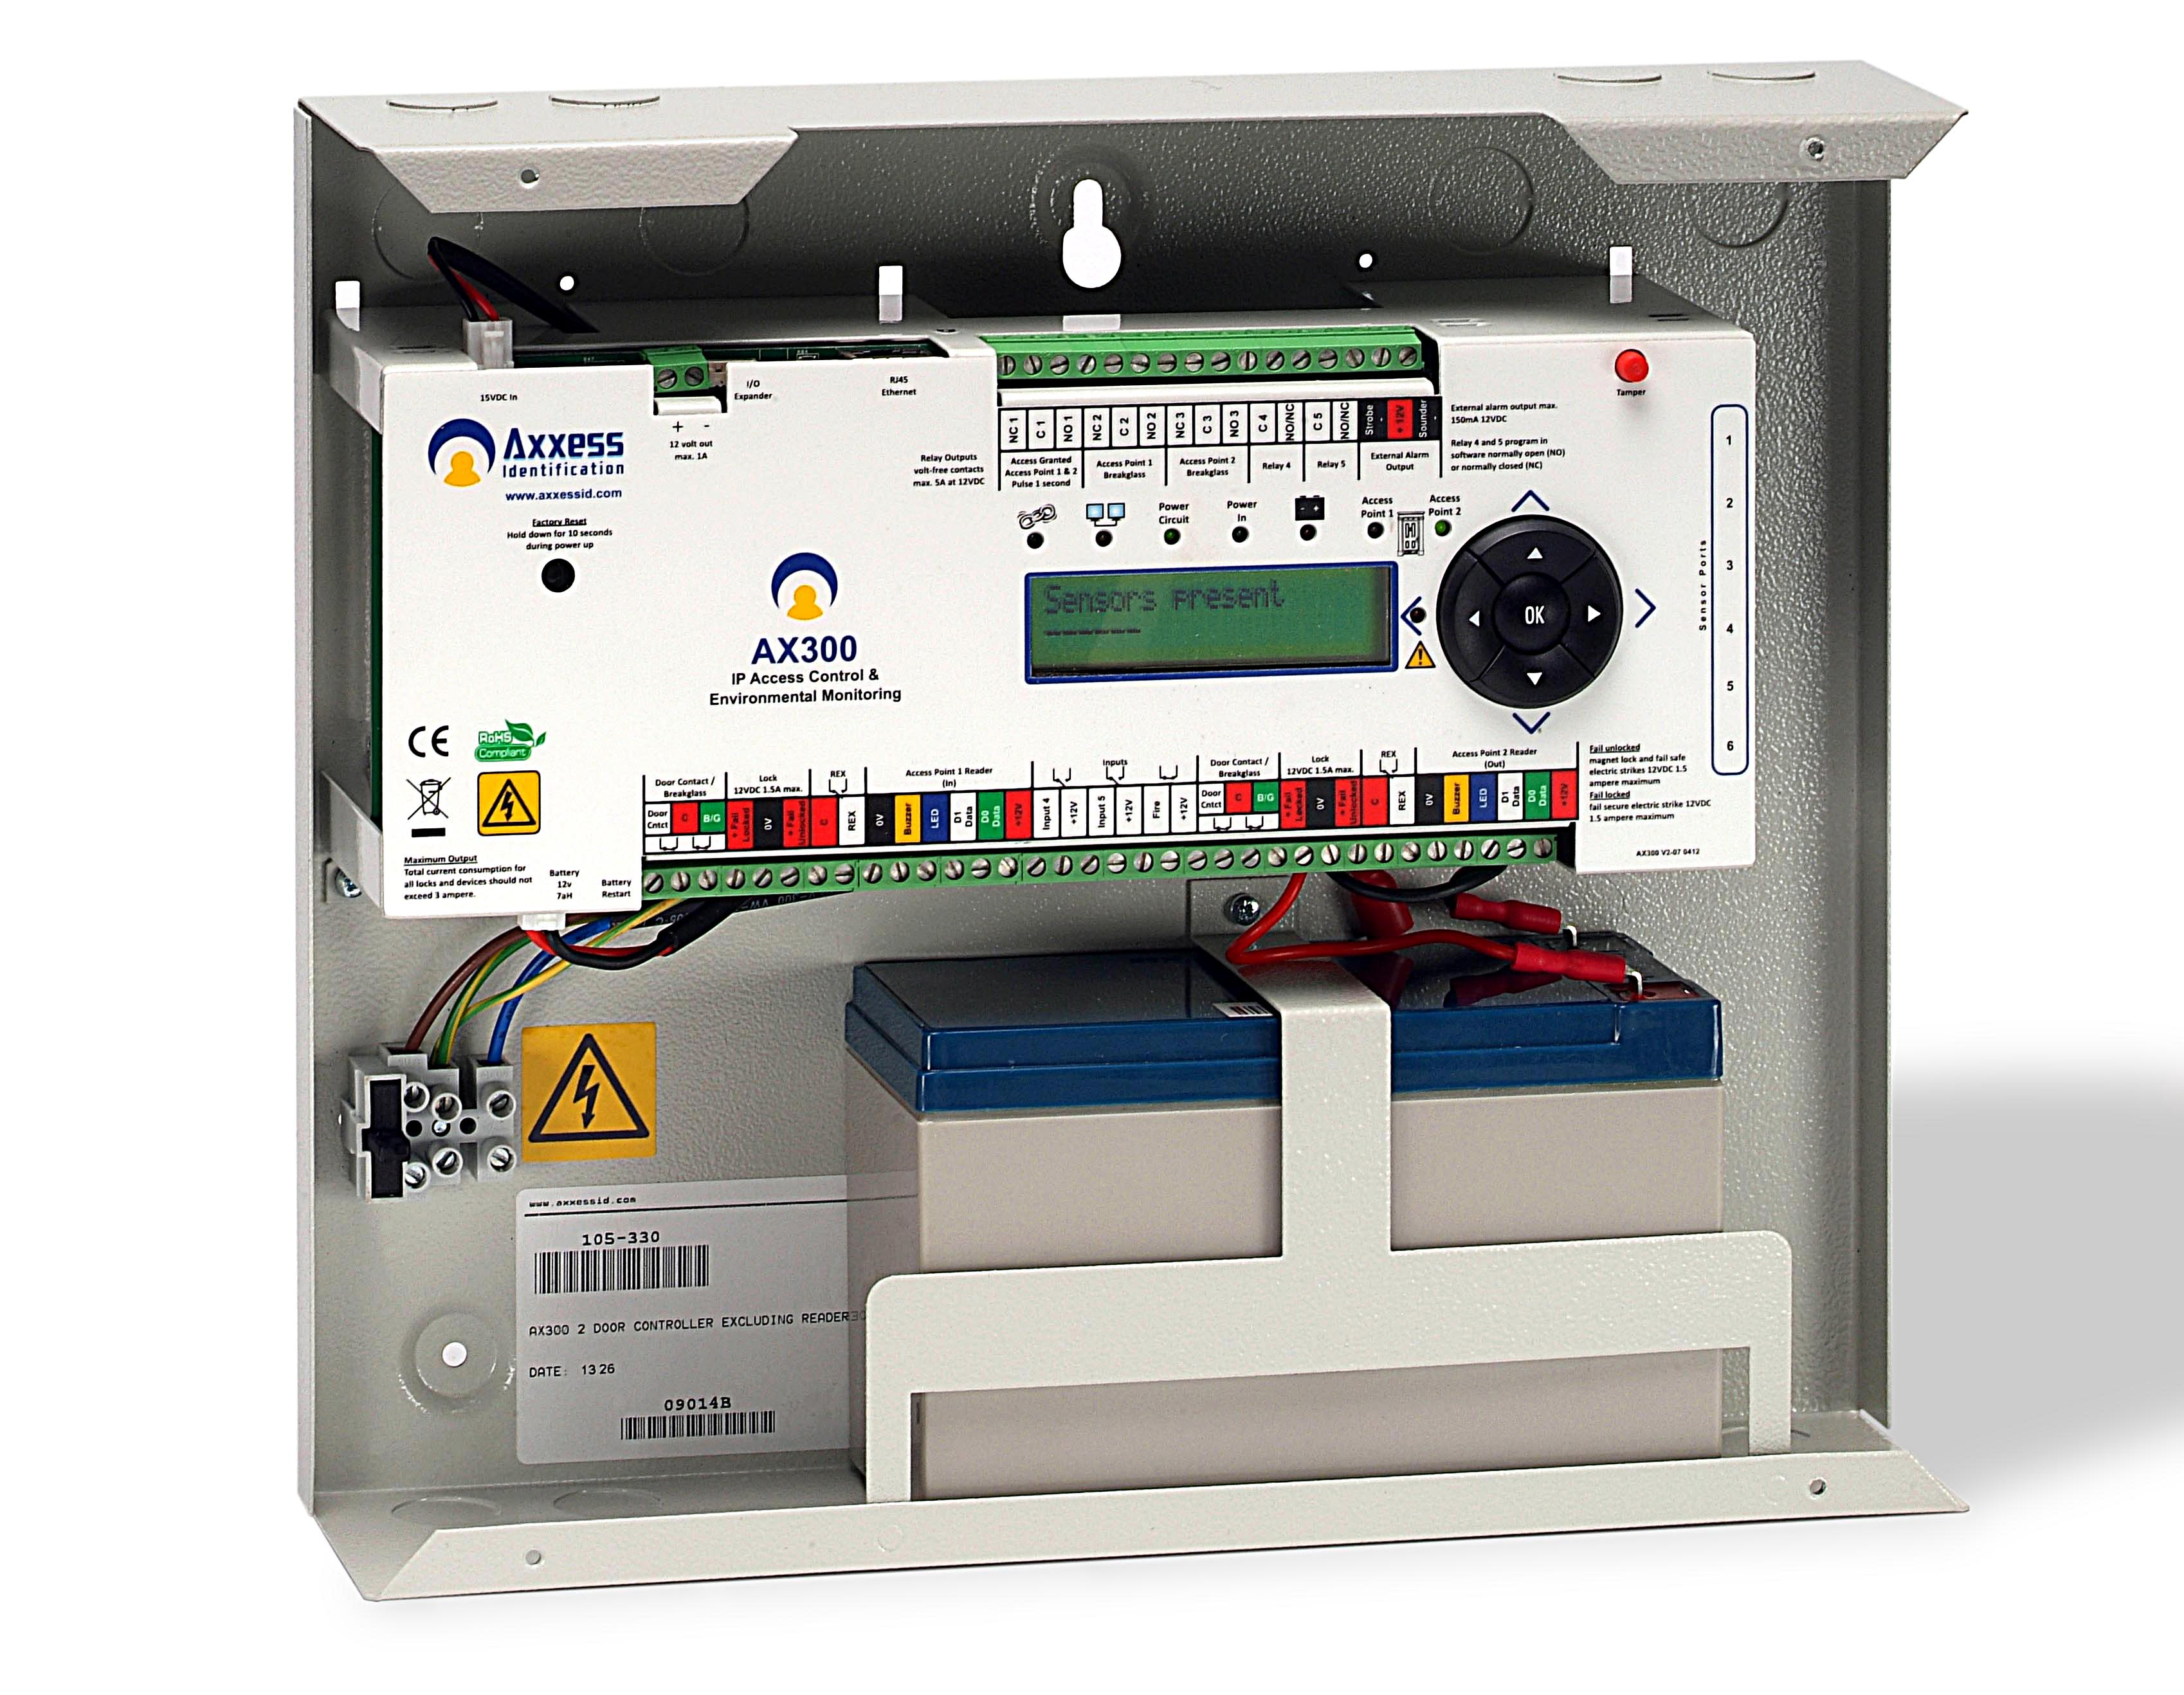 Interior view - AX300 2 door controller with built in power supply, optional battery backup.